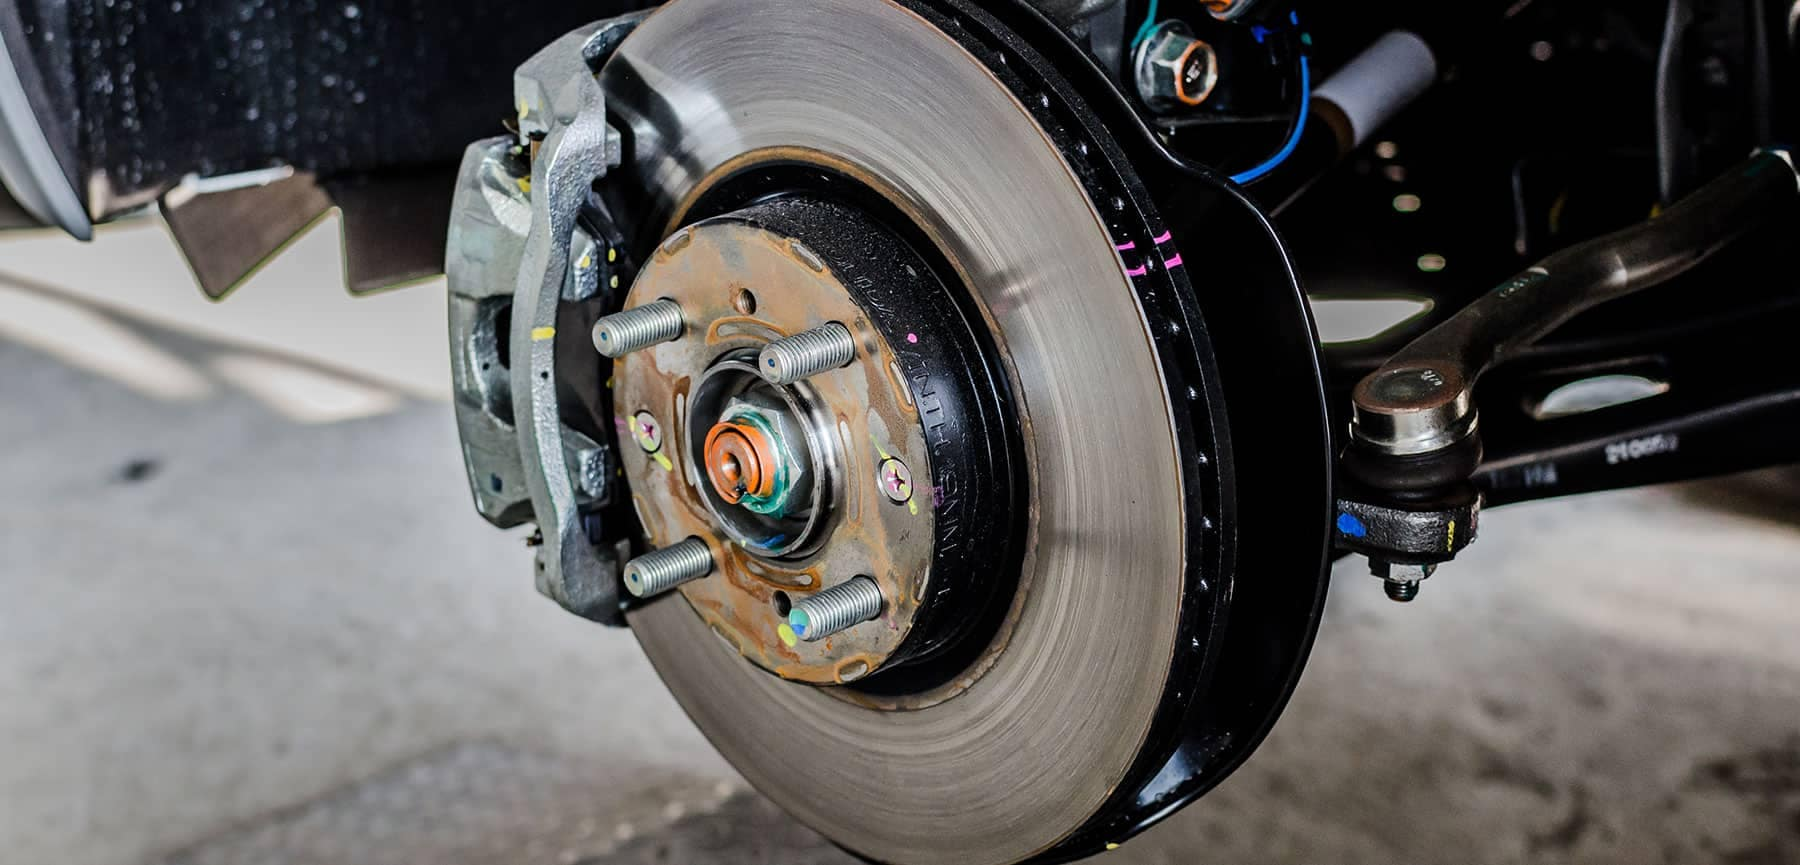 A closeup image of brake rotors on a vehicle